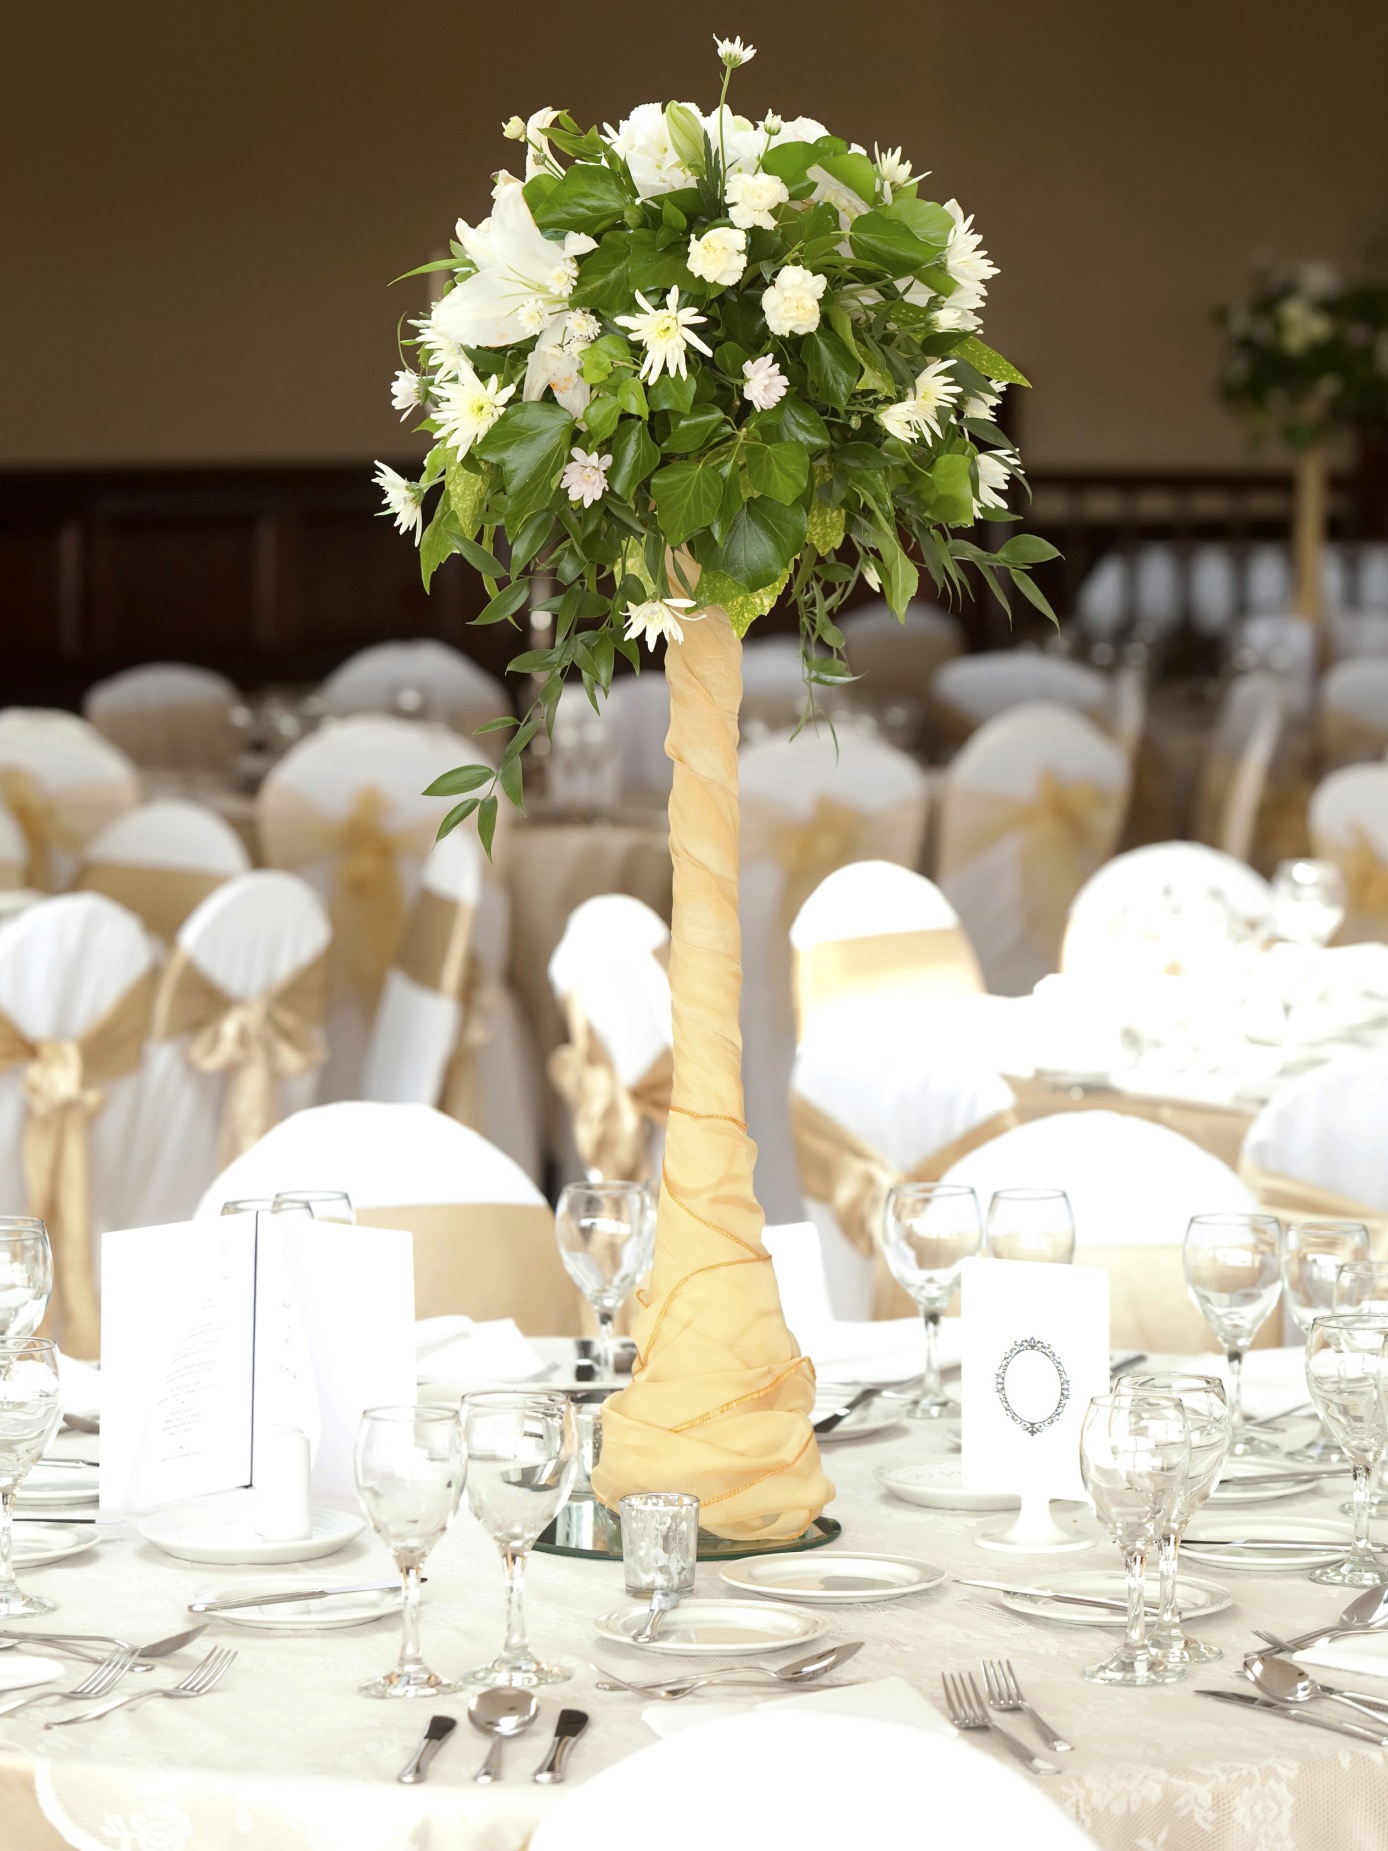 12 Stylish High Low Wedding Centerpieces Ideas 19321 Centerpieces Ideas